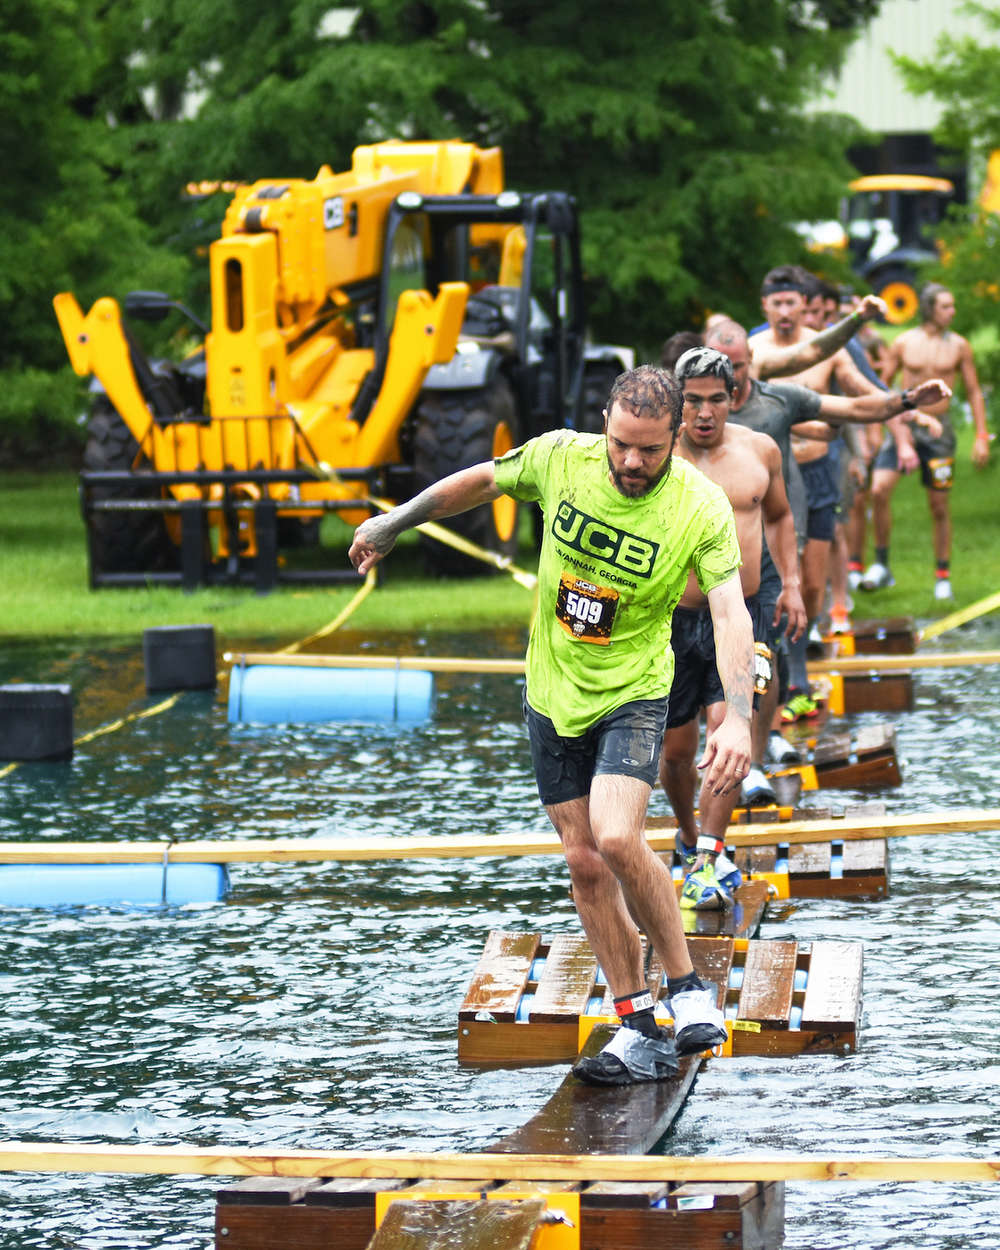 Runners completed 43 obstacles, including a splash through the JCB lake.